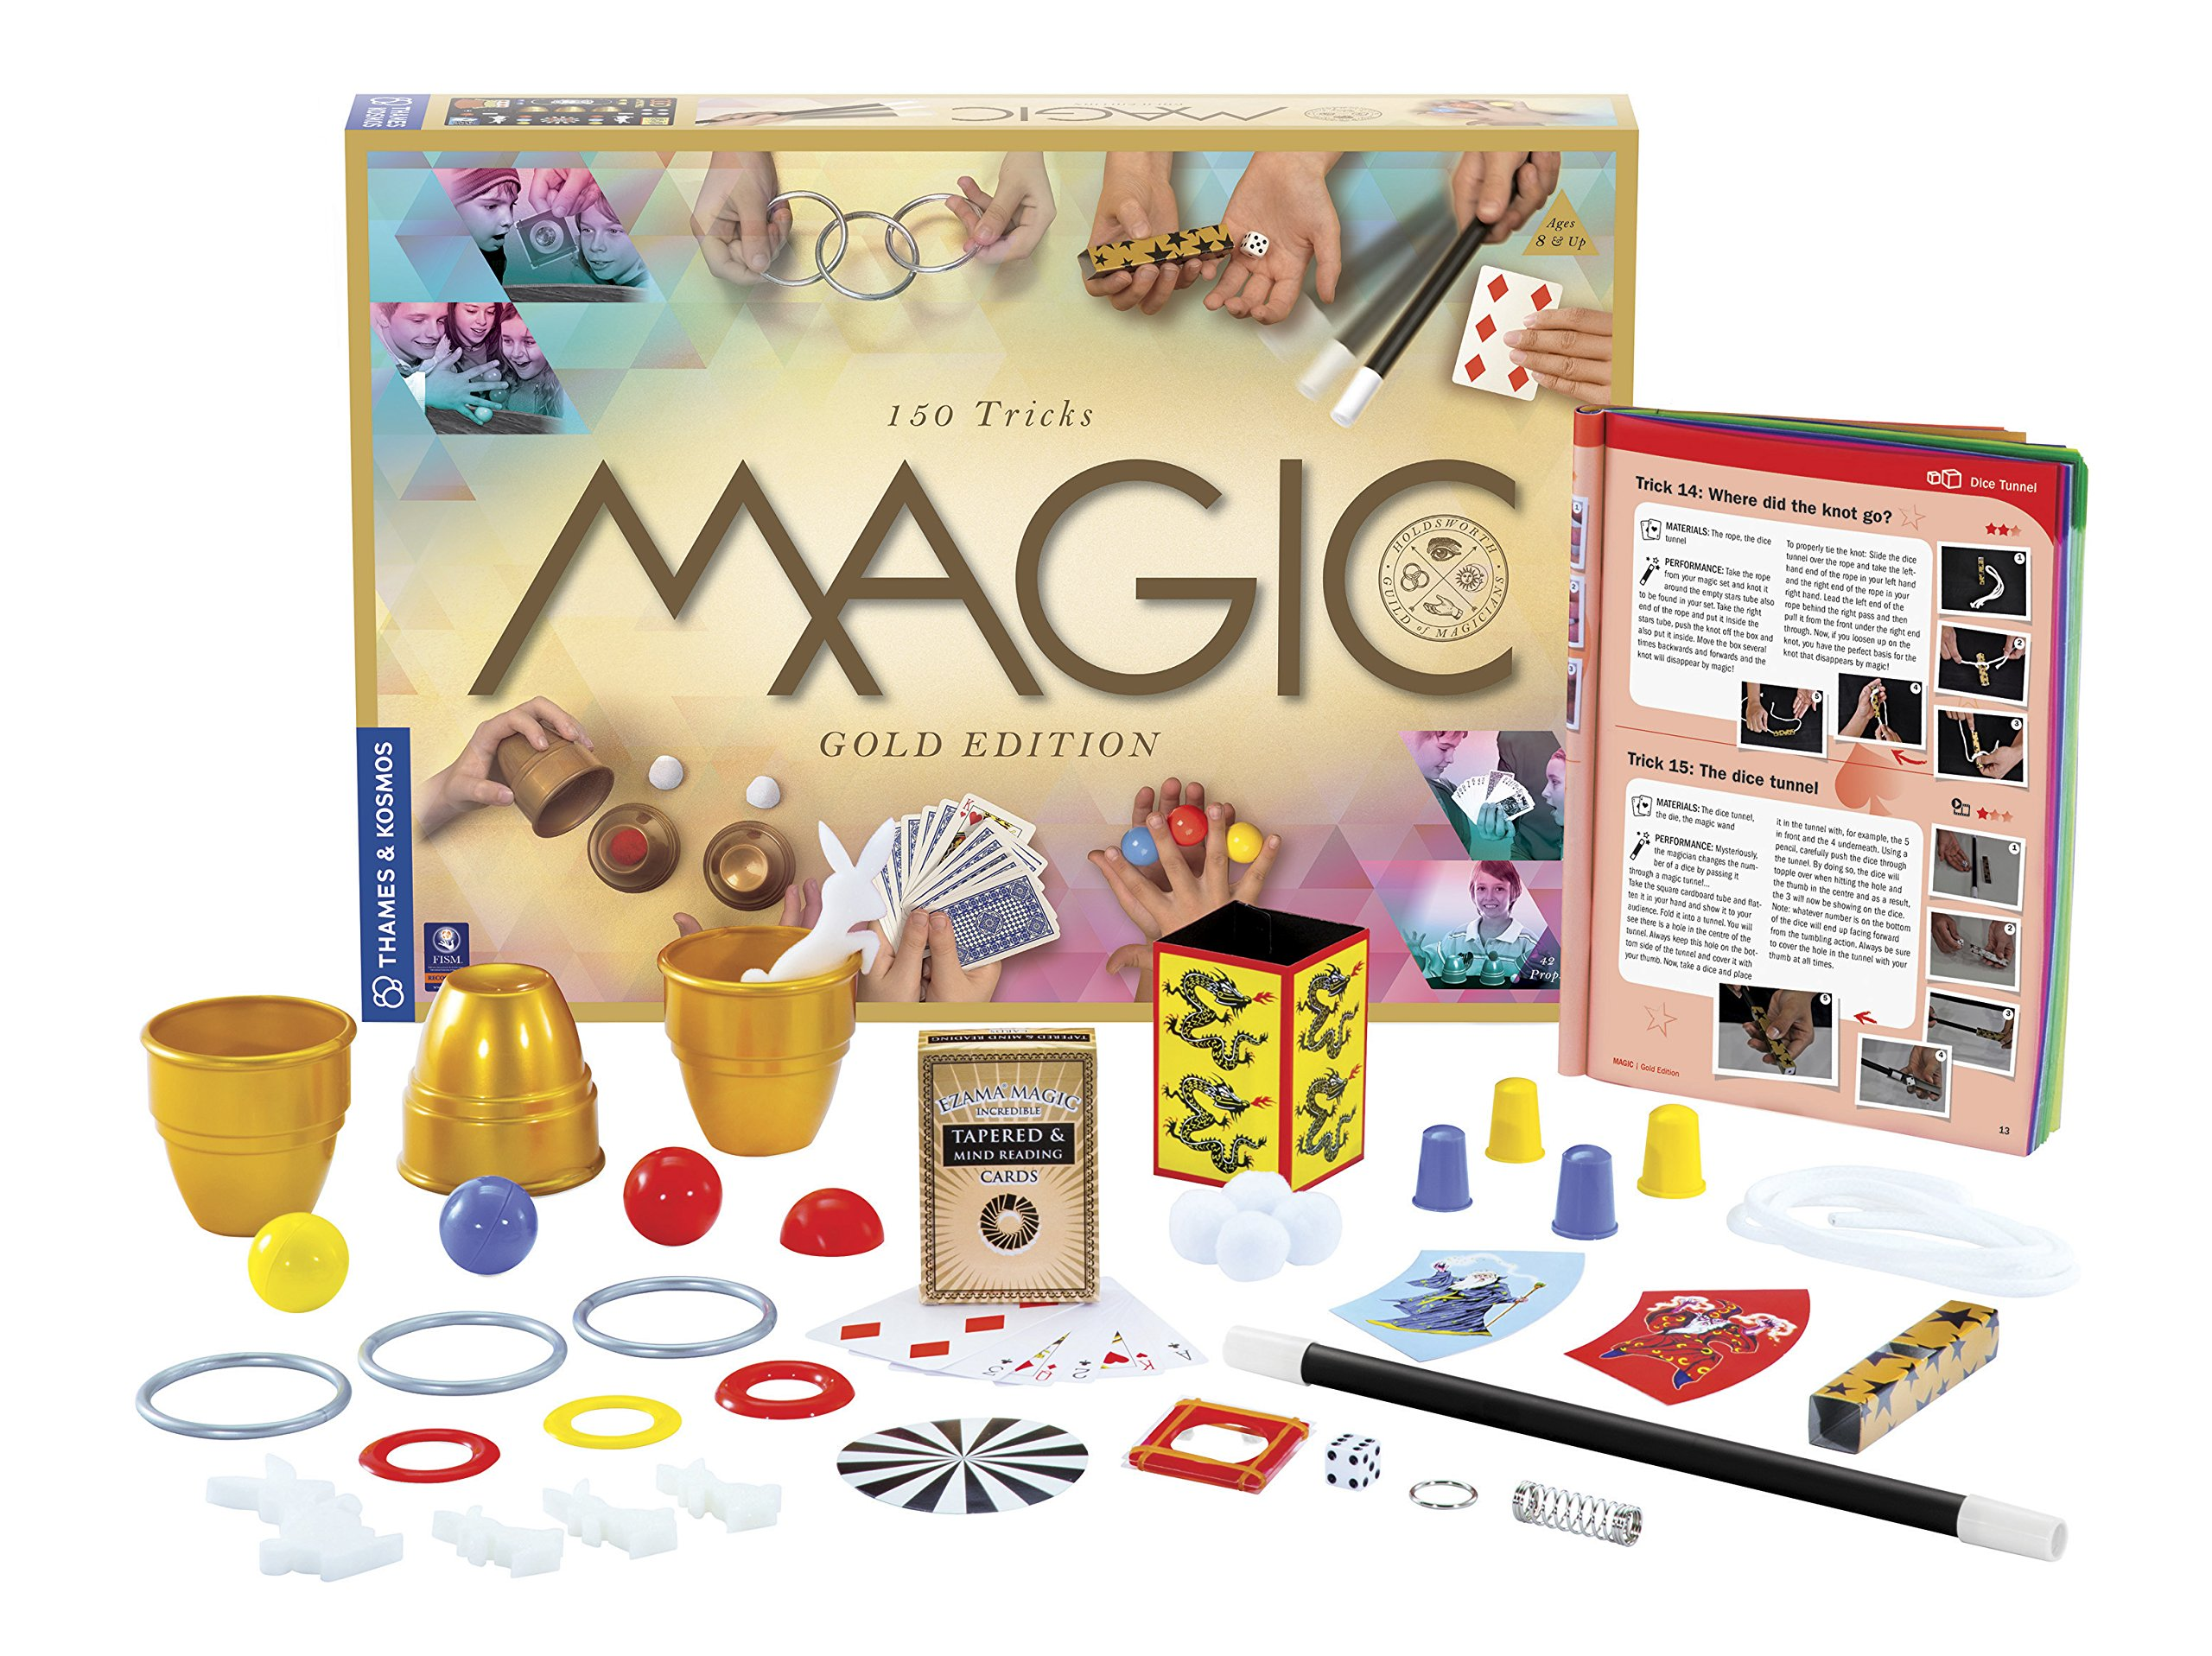 Thames & Kosmos Magic: Gold Edition | Playset with 150 Tricks | 96 Page Full Color Instruction Manual | 42 Props | Video Tutorials | Fun for Kids 8+ by Thames & Kosmos